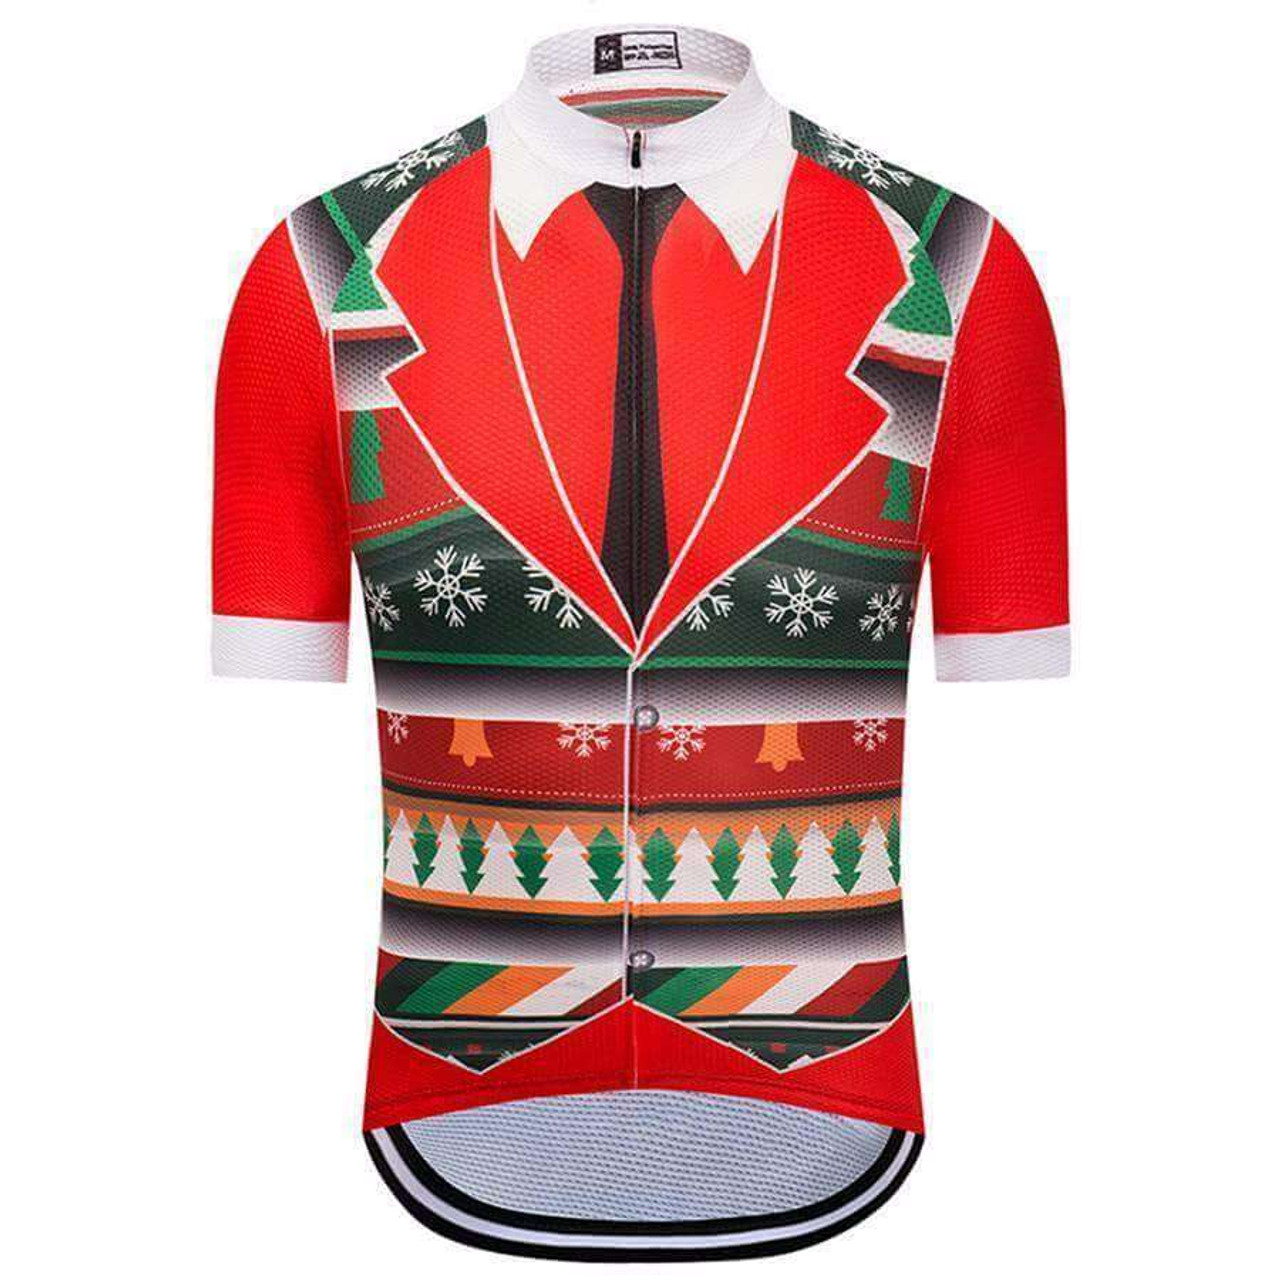 Christmas Vest.Formal Christmas Vest And Tie Men S Cycling Jersey